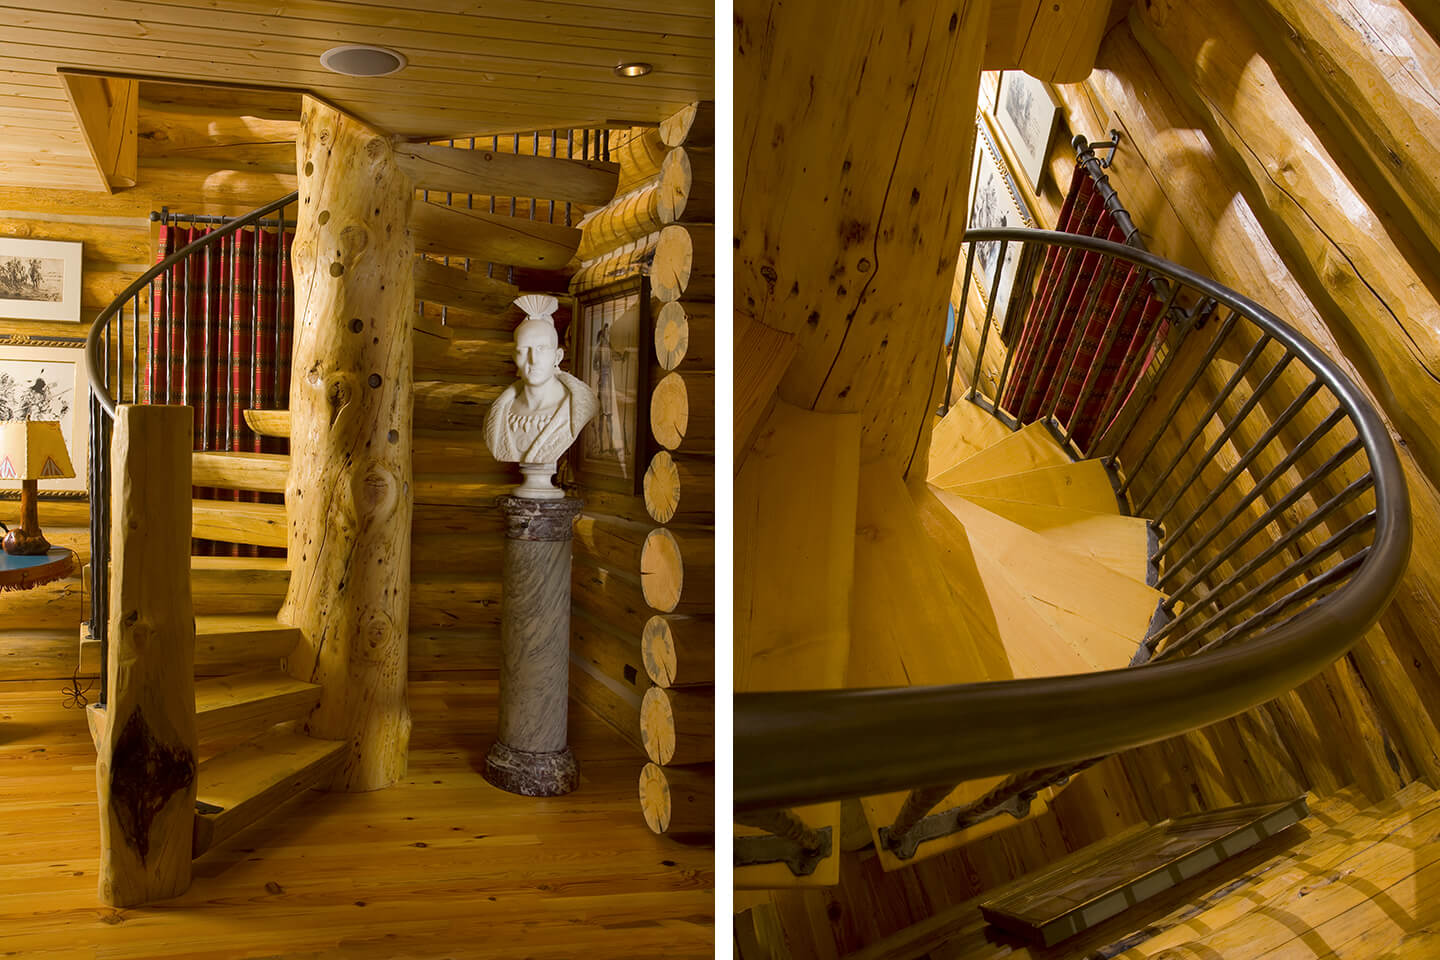 Log spiral staircase with Native American sculpture